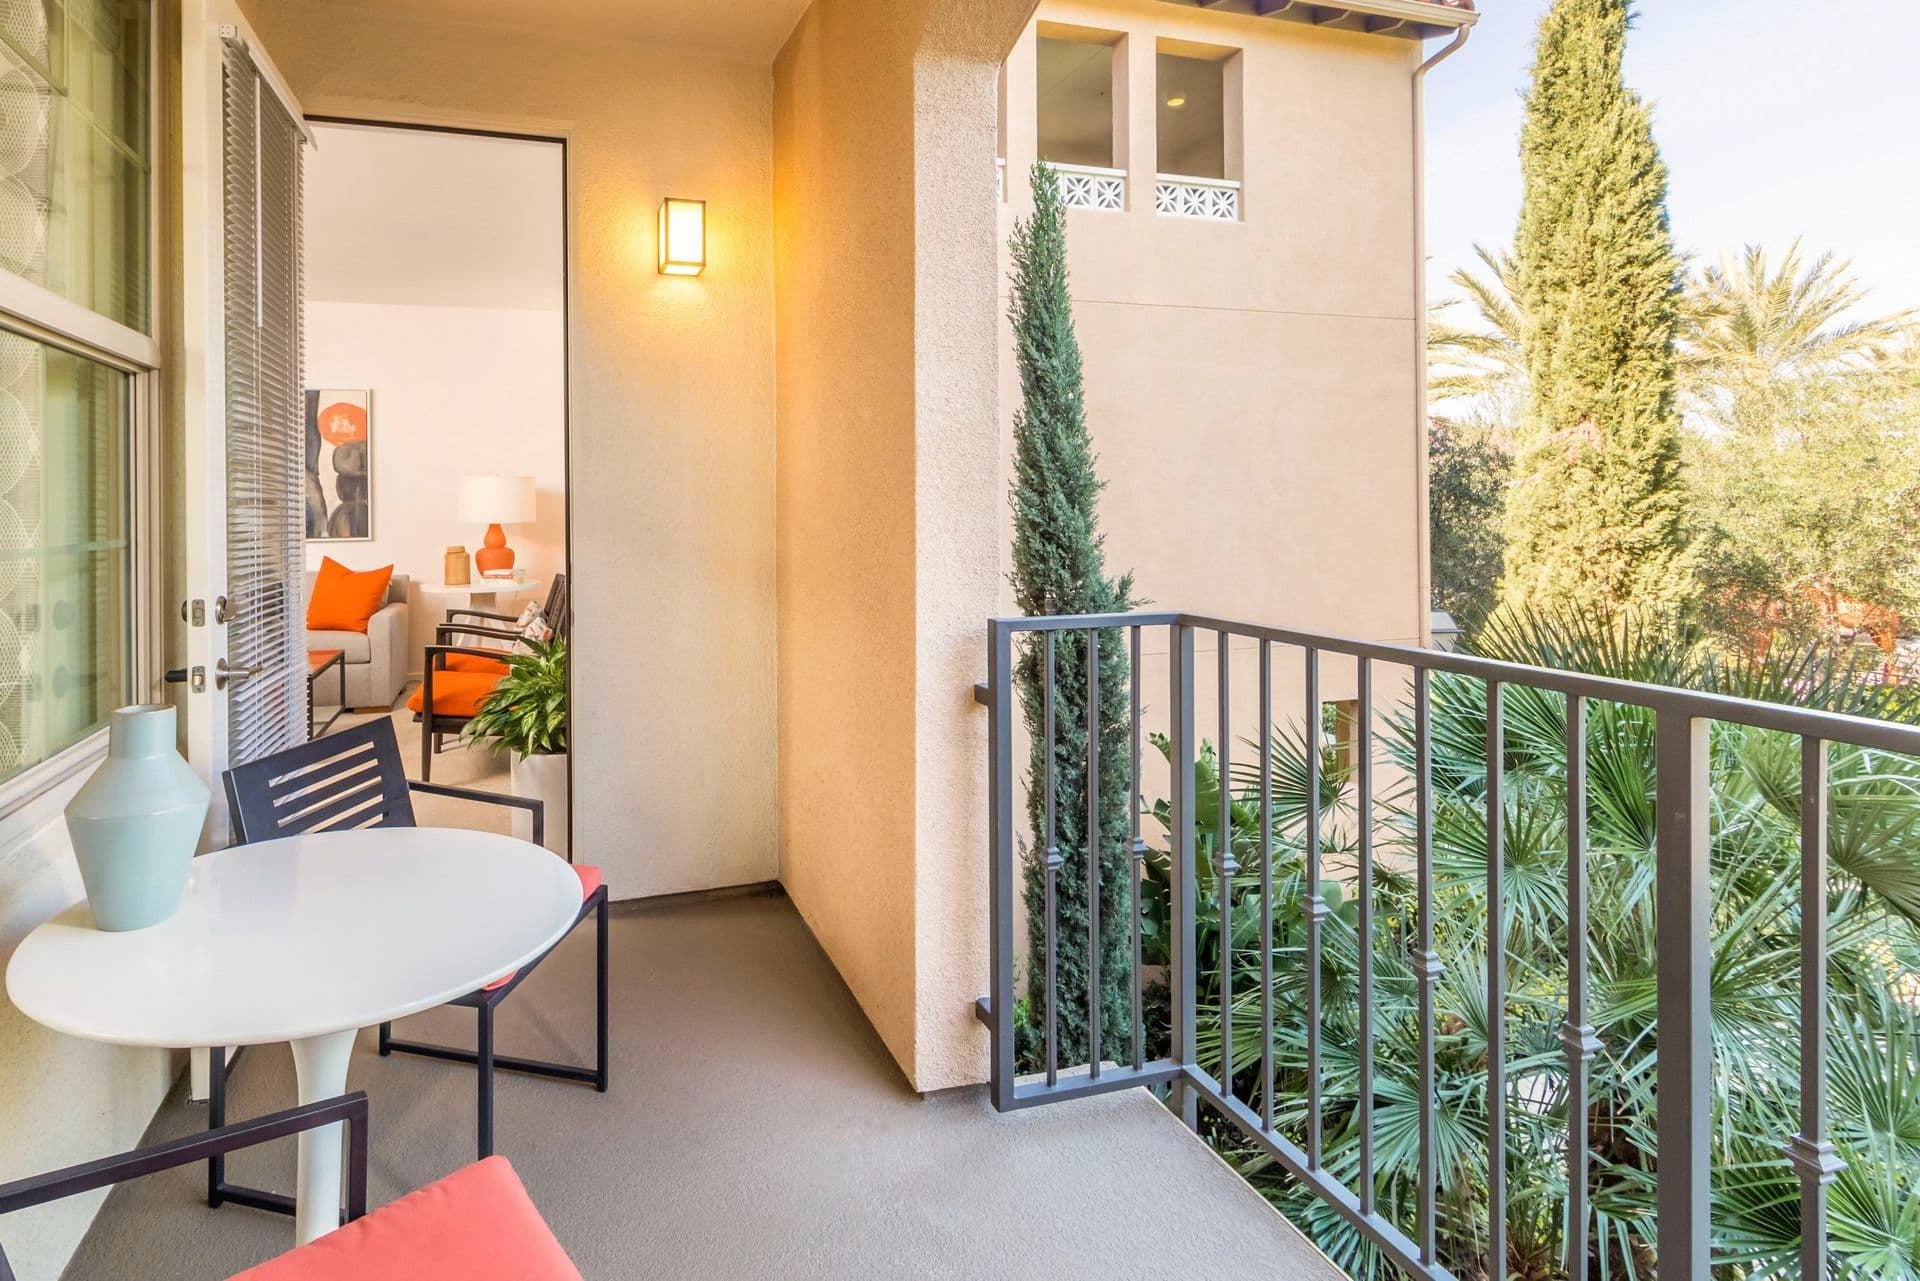 Interior view of balcony at of Avella Apartment Homes in Irvine, CA.